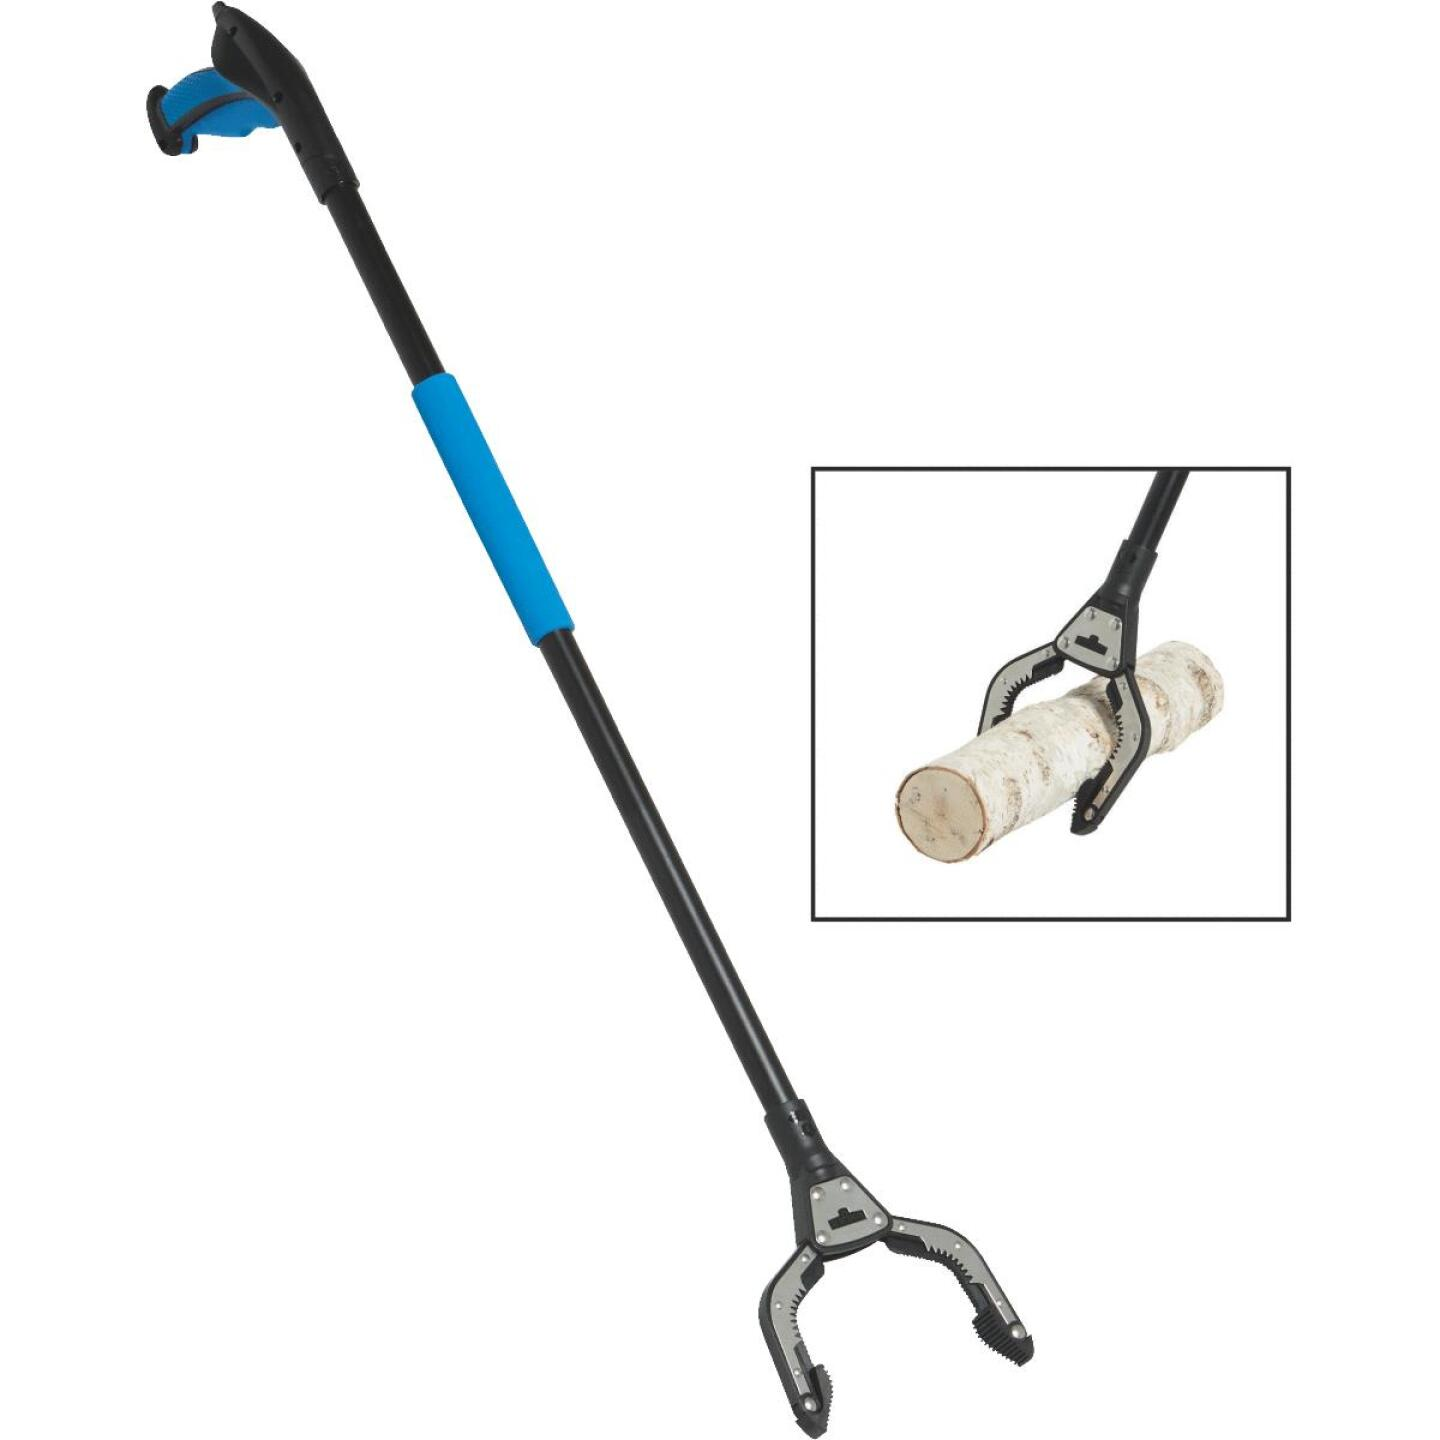 Unger Professional Rugged Reacher 42 In. Grabber Tool Image 1